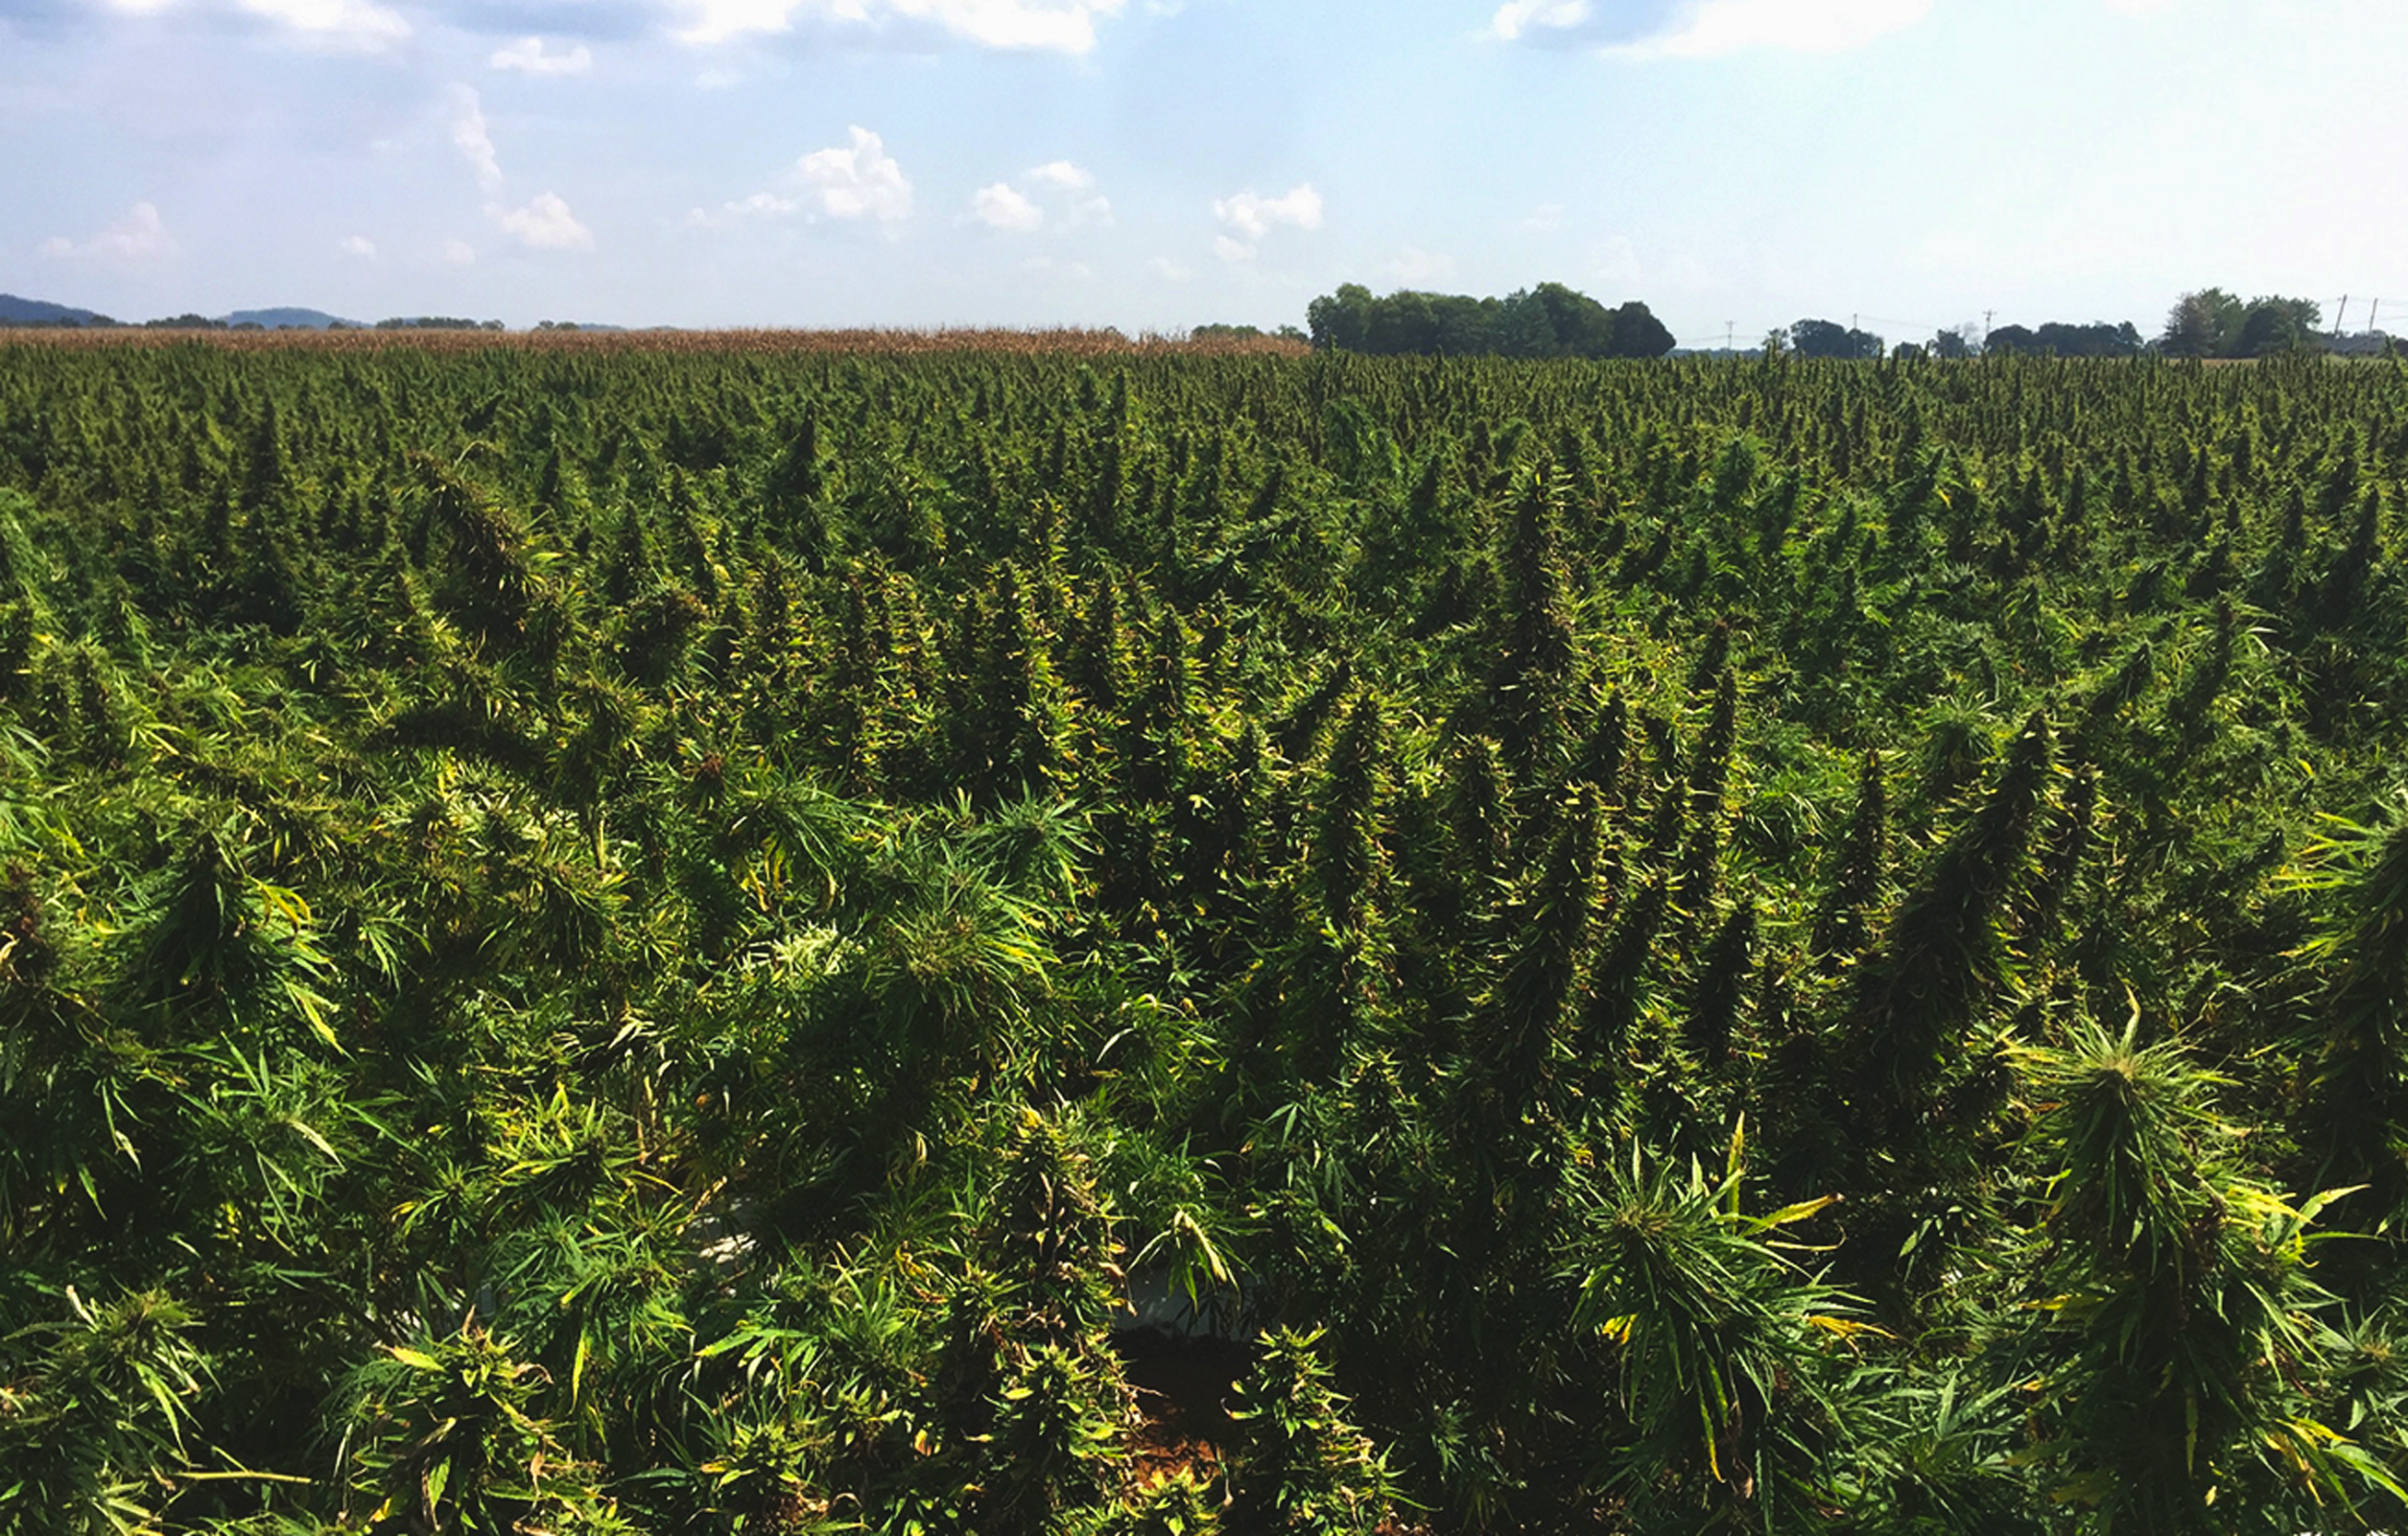 Land stewardship in hemp cultivation